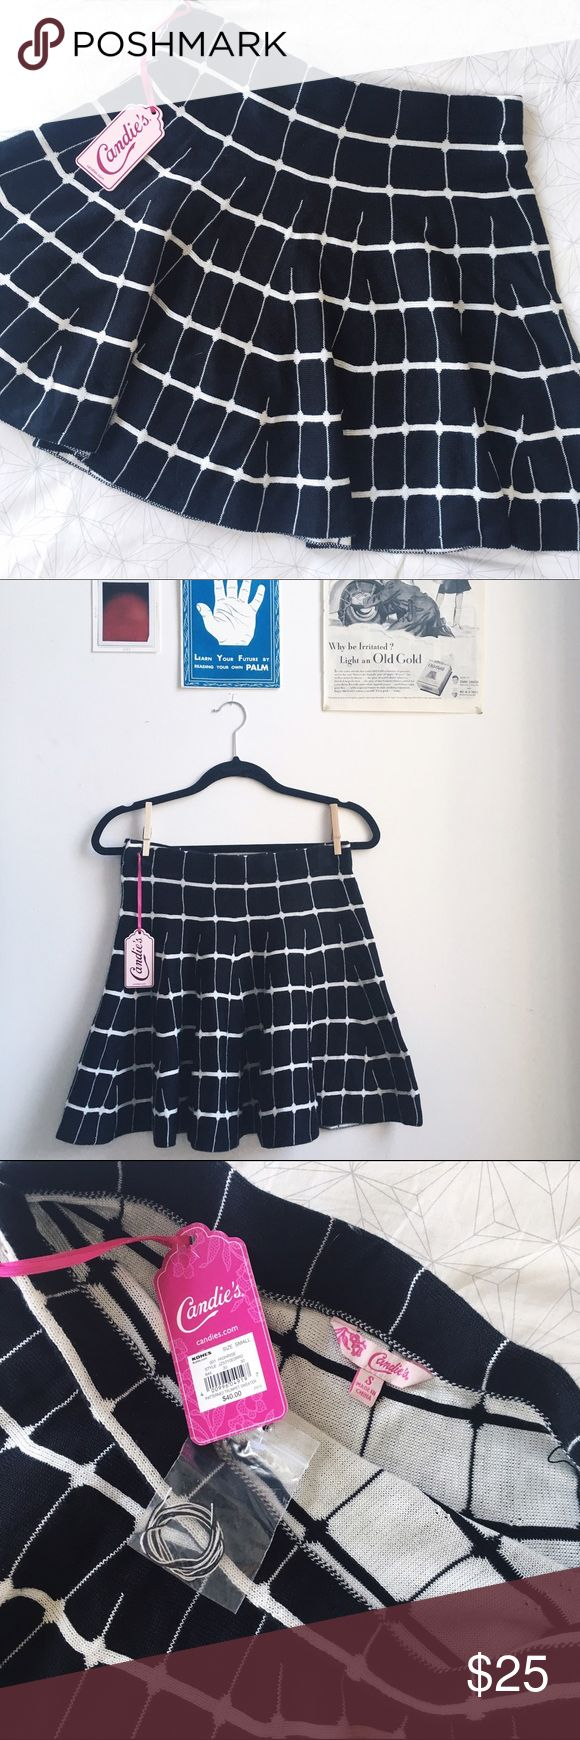 """NWT Candie's B&W Trumpet Skirt I love this little number!! A cool black and white grid-like pattern adorns this sweet and COMFORTABLE thick 100% acrylic """"trumpet"""" skirt by Candie's. The large pleats are so flattering and make it just darling for any weather or body type. Never worn, tags and extra thread still attached! Skirt is 14in across the waistband, 17.25in from waist to hem. Candie's Skirts Circle & Skater"""